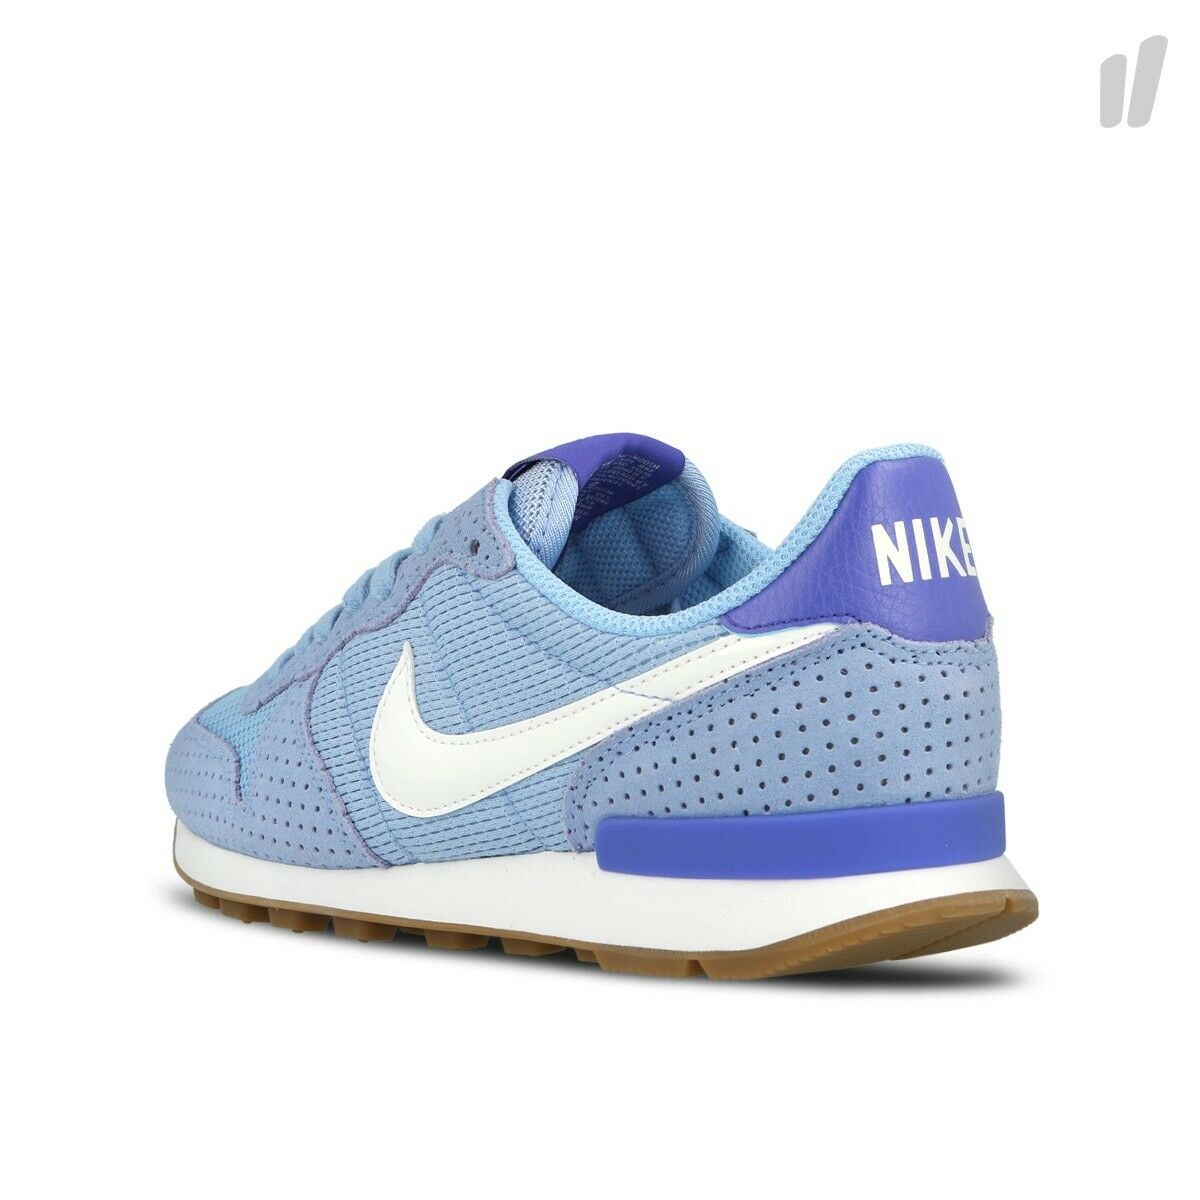 UK 3.5 Femme Nike Internationalist Bleu Trainers 828407-001 EUR 36.5 US 6 828407-001 Trainers bf991a